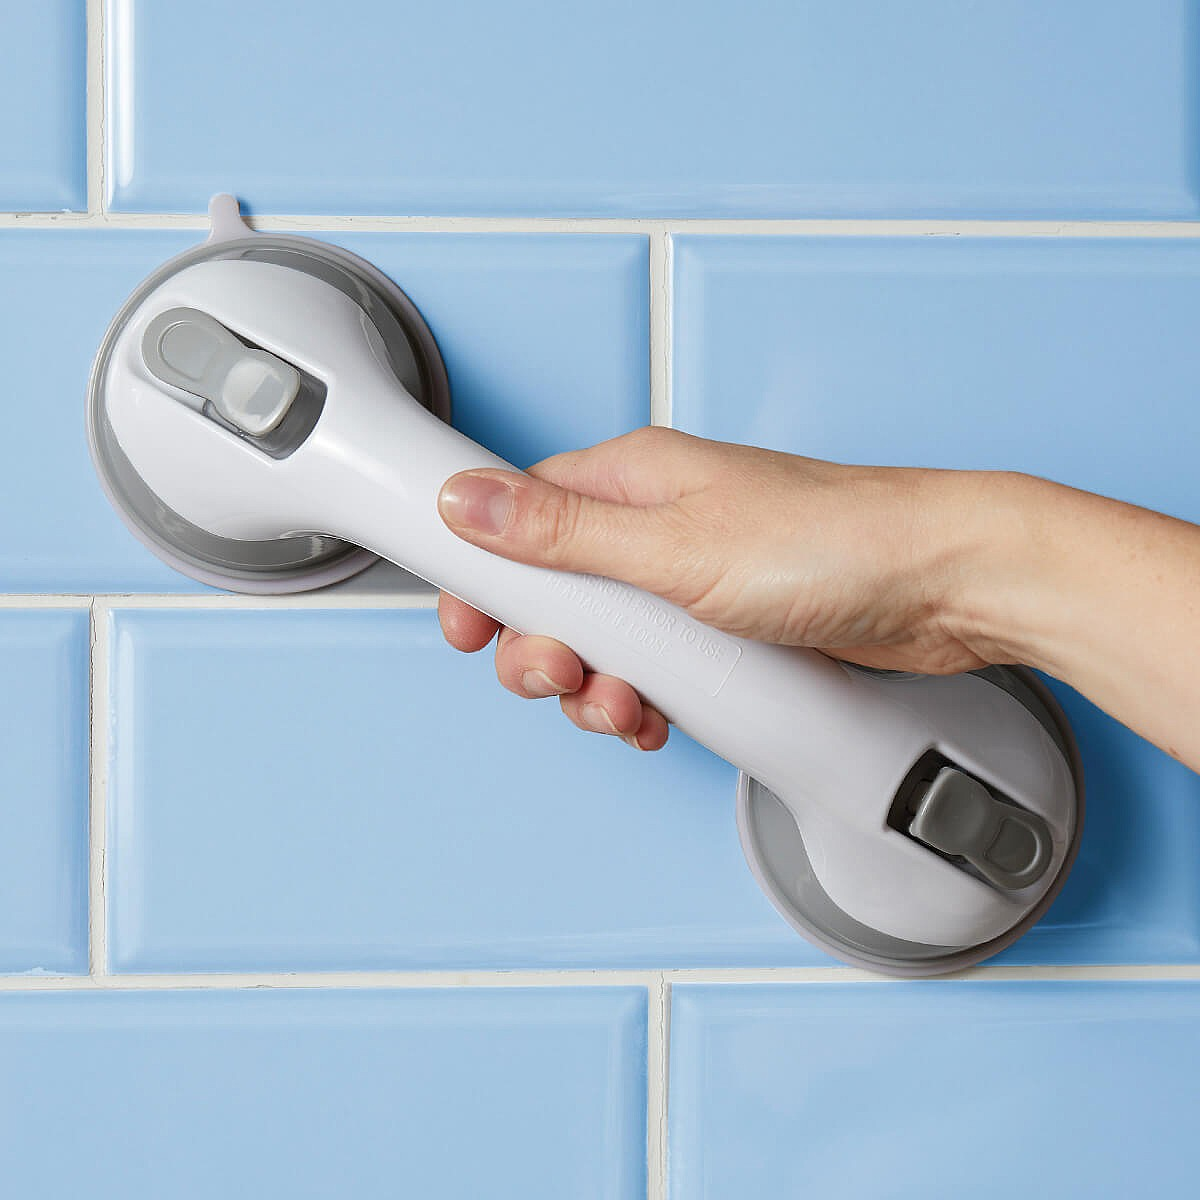 White Suction Safety Handles - Buy 1 Get 1 Free | Health | Coopers ...